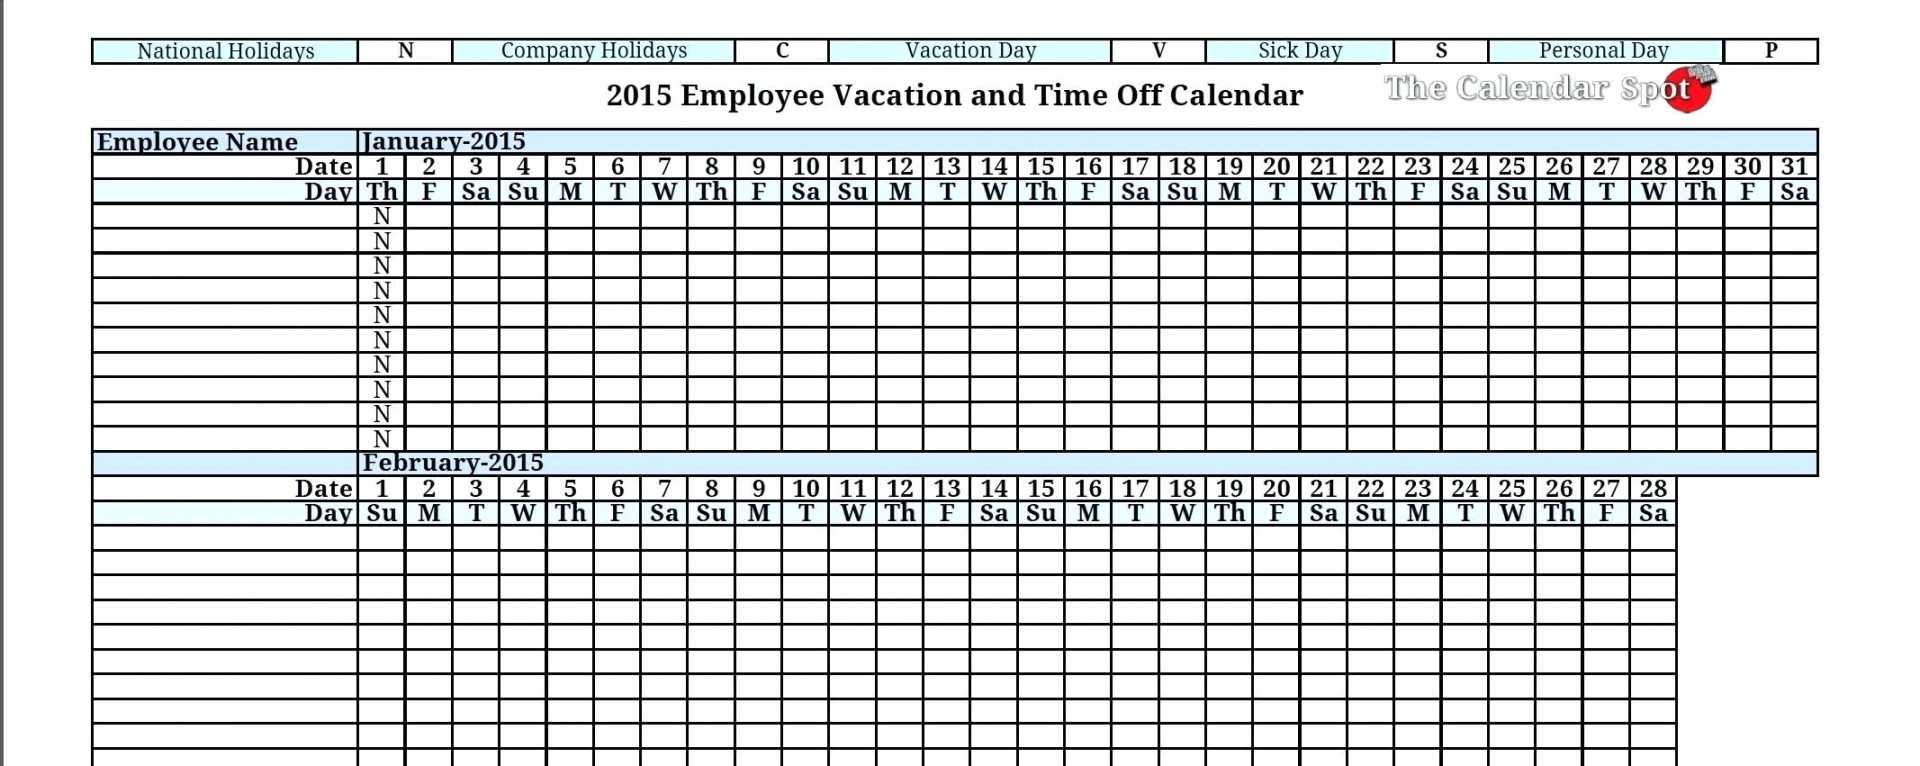 Holiday Spreadsheet Within 022 Travelplanner002 Employee Vacation Planner Template Excel